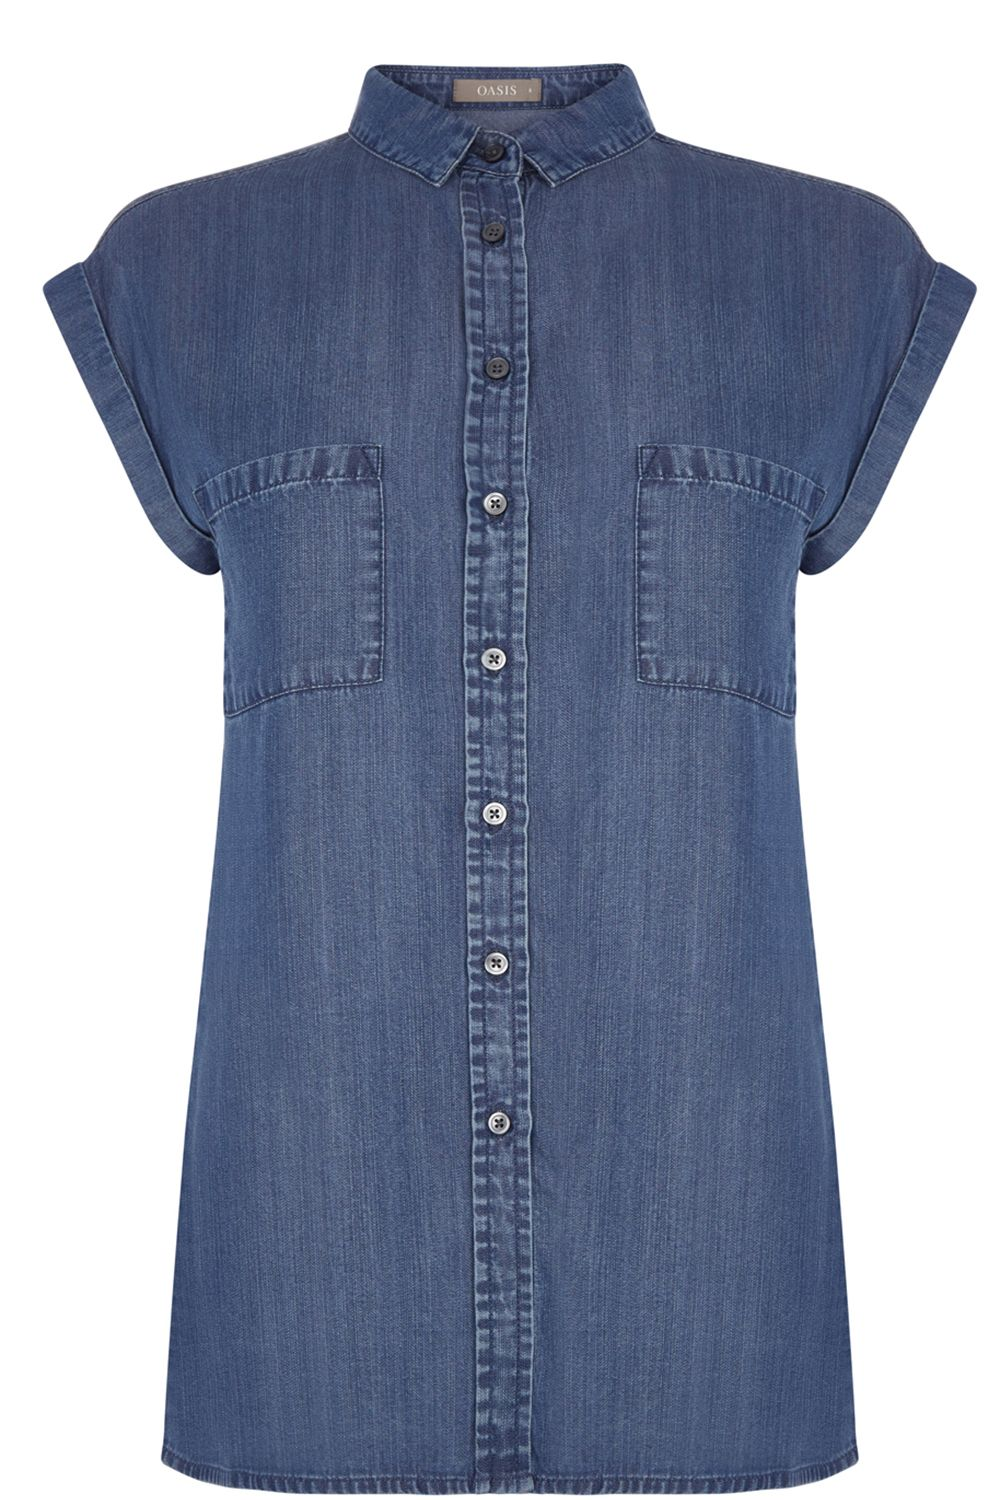 Oasis Taylor Shirt, Denim